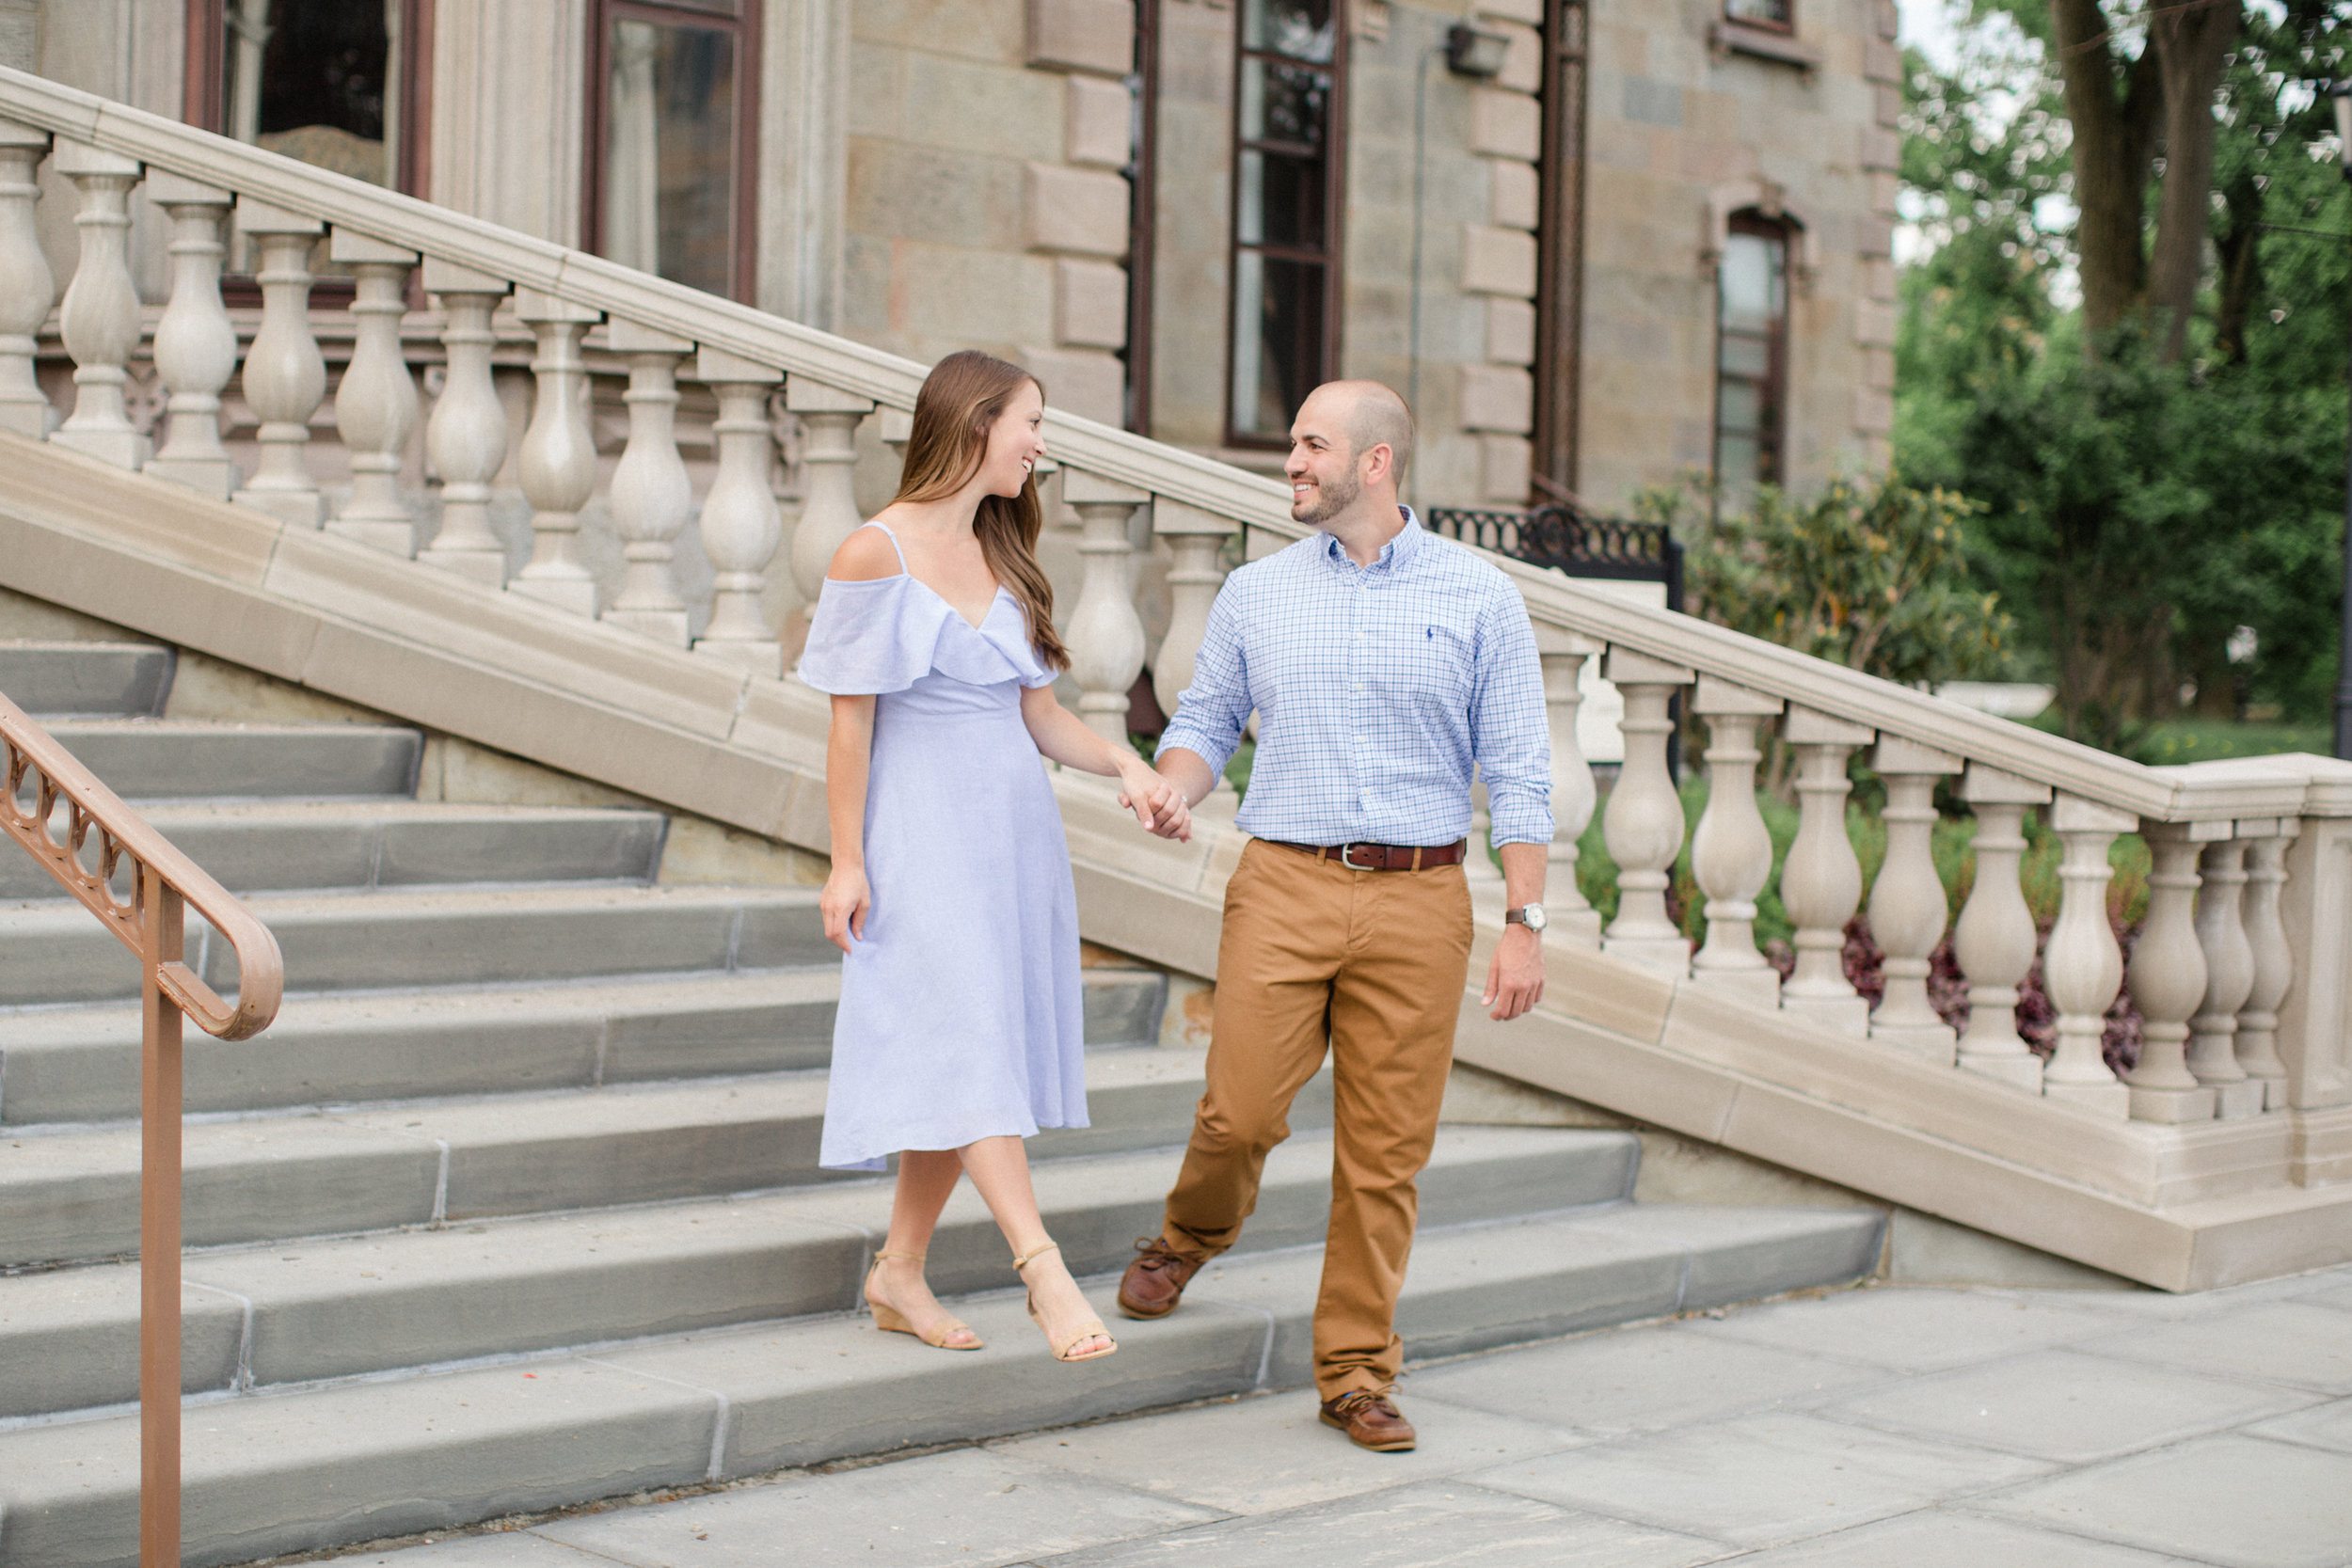 University of Scranton Engagement Session Photos_JDP-14.jpg